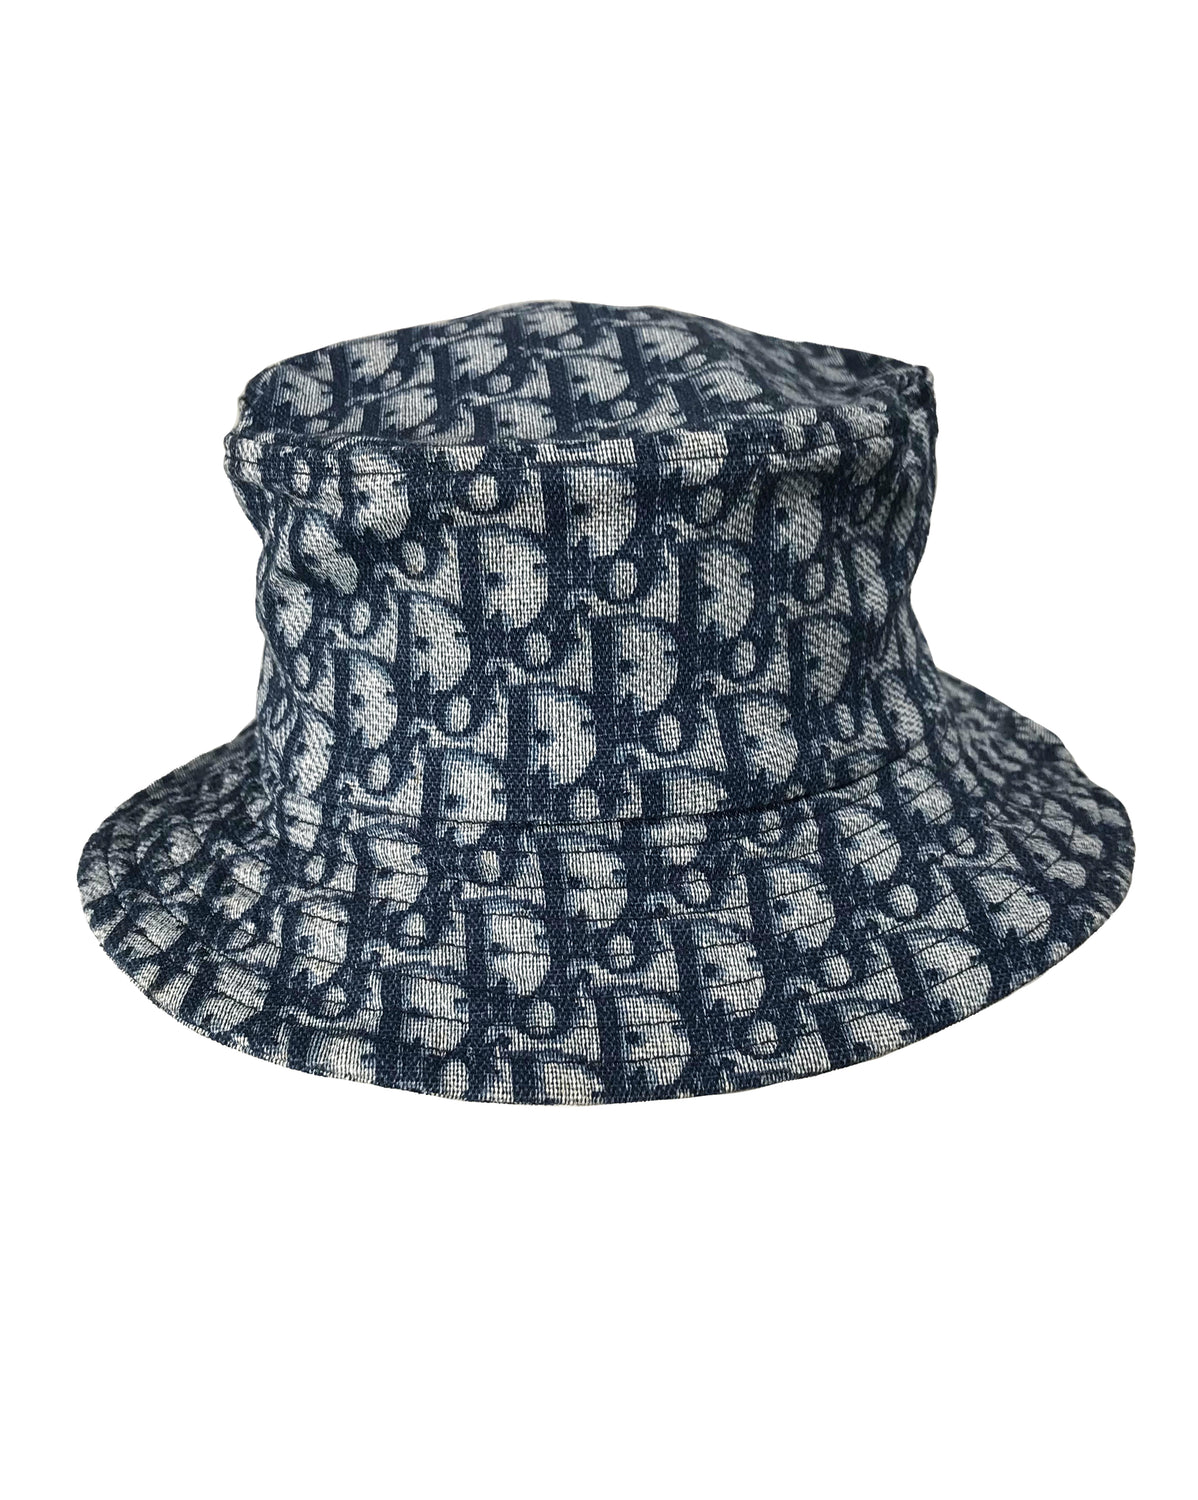 Fruit Vintage Christian Dior Blue Logo Trotter Monogram Bucket Hat by John Galliano